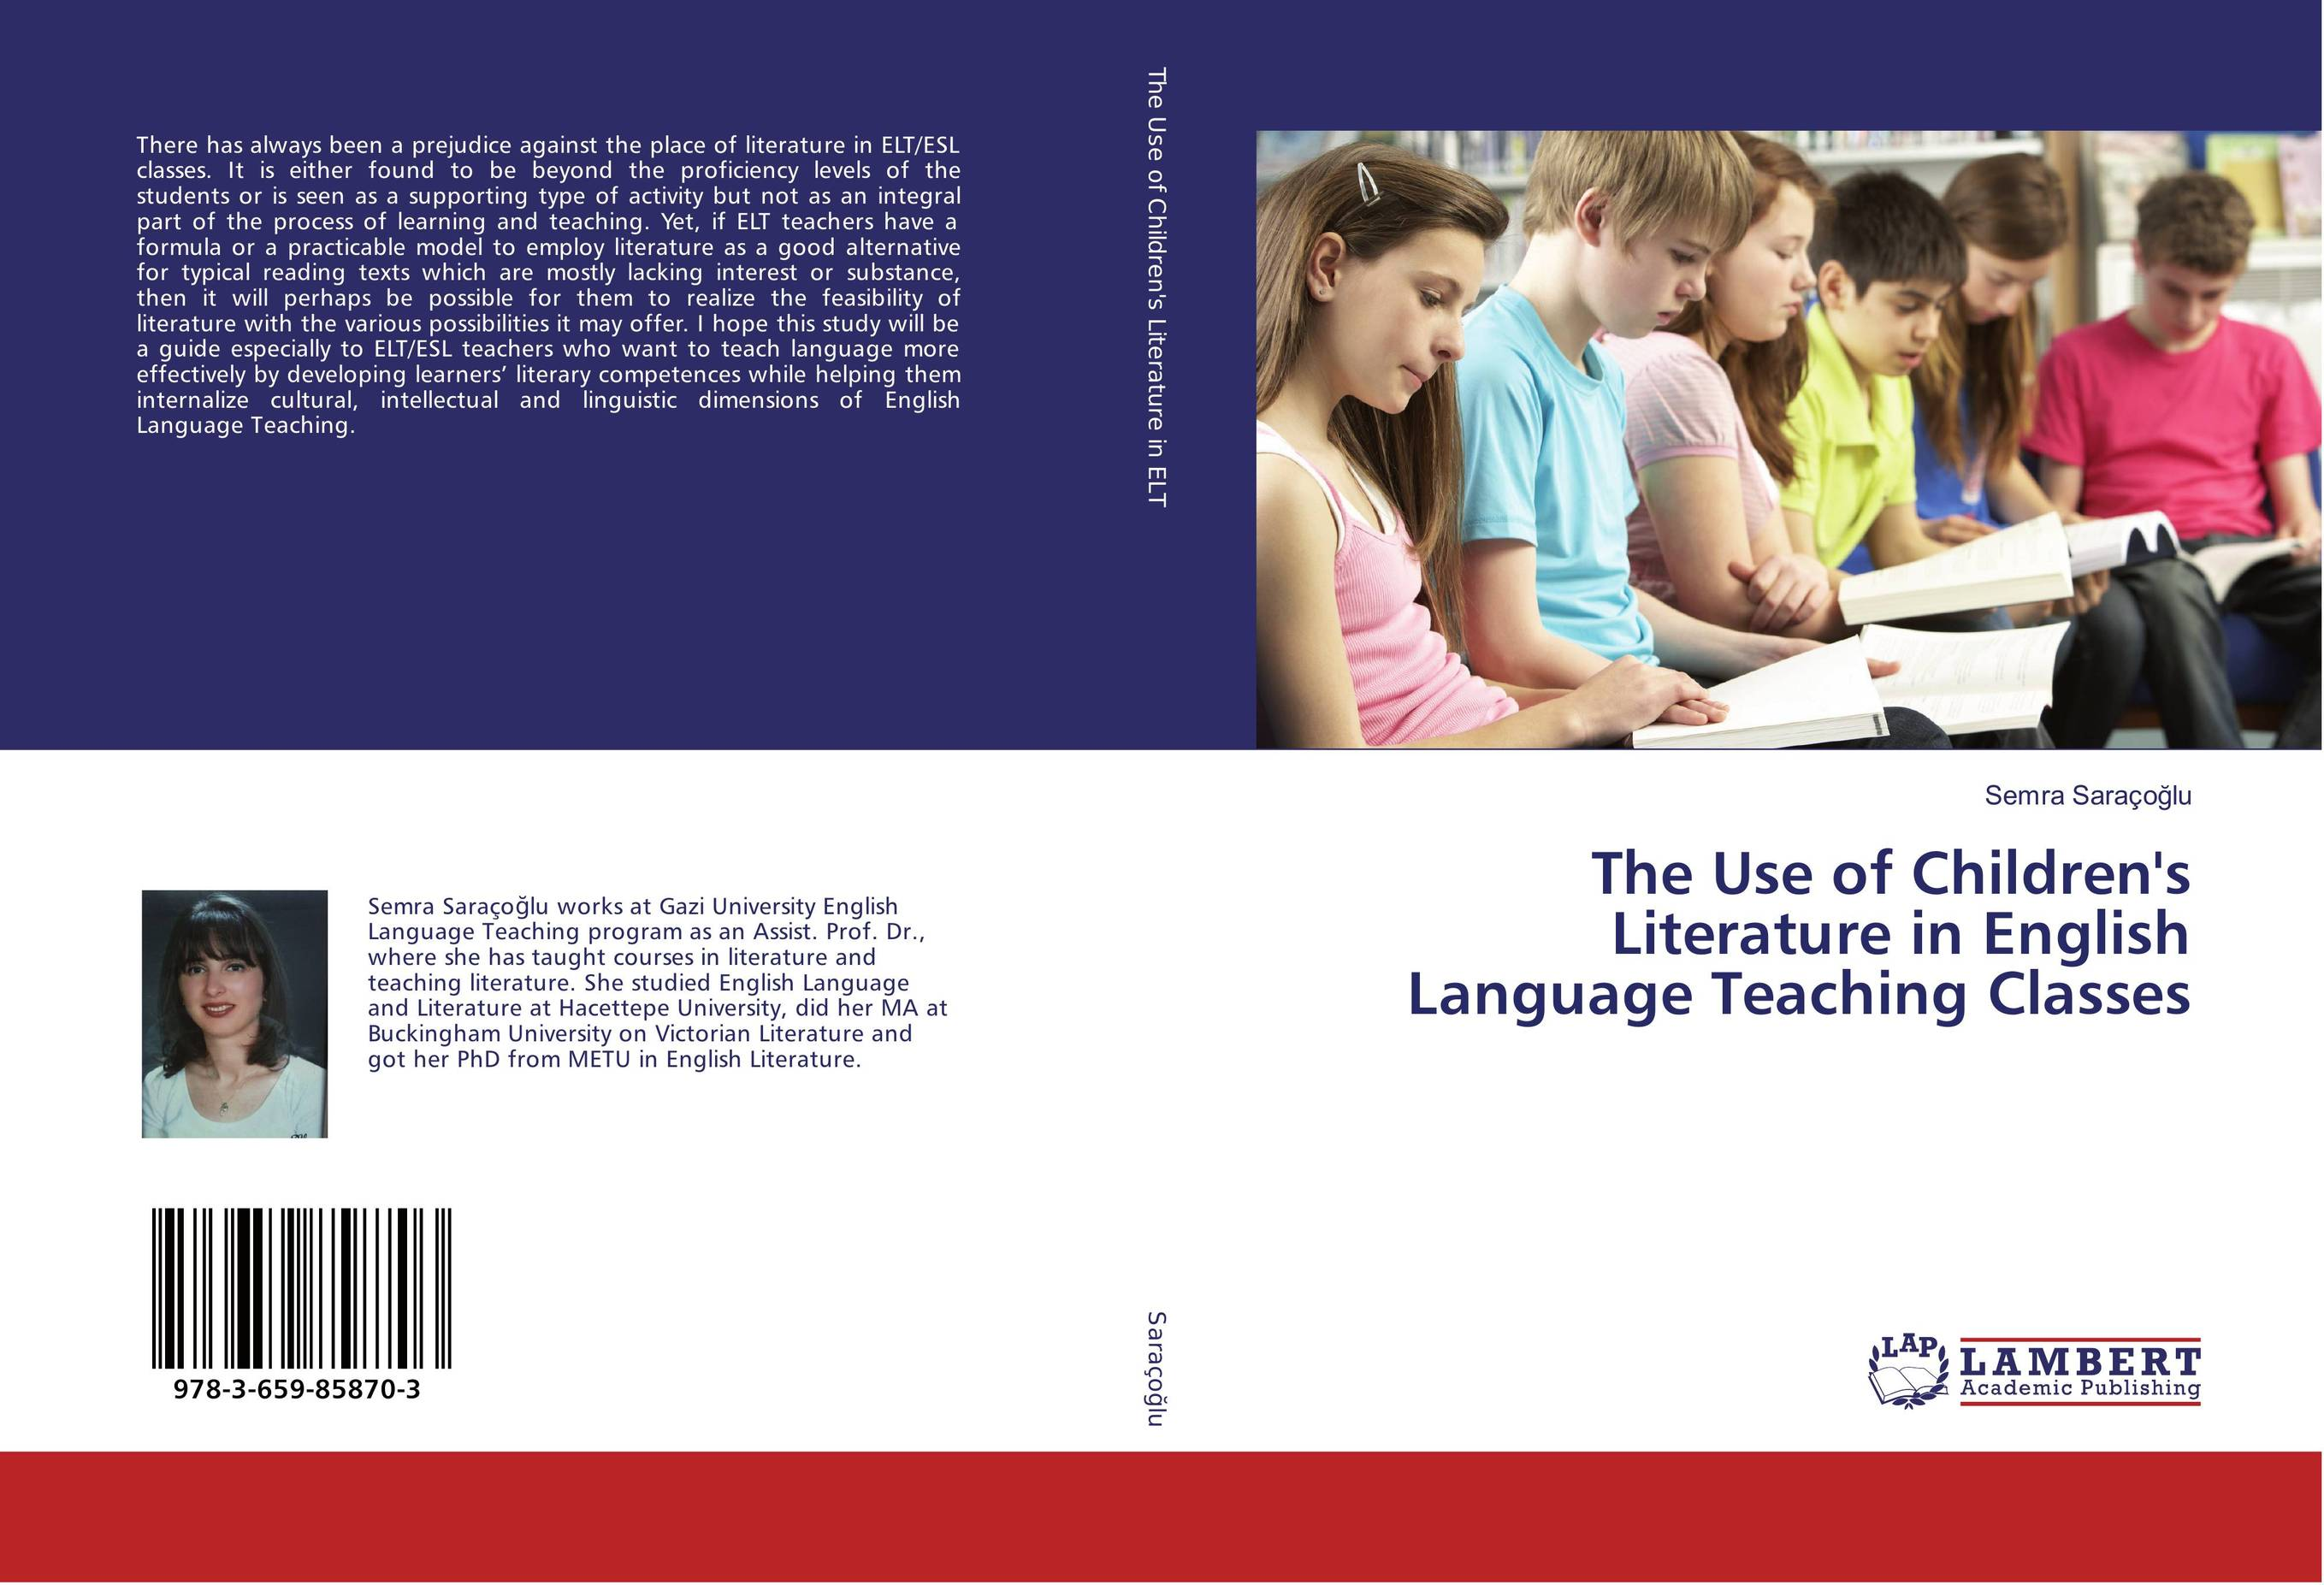 The Use of Children's Literature in English Language Teaching Classes